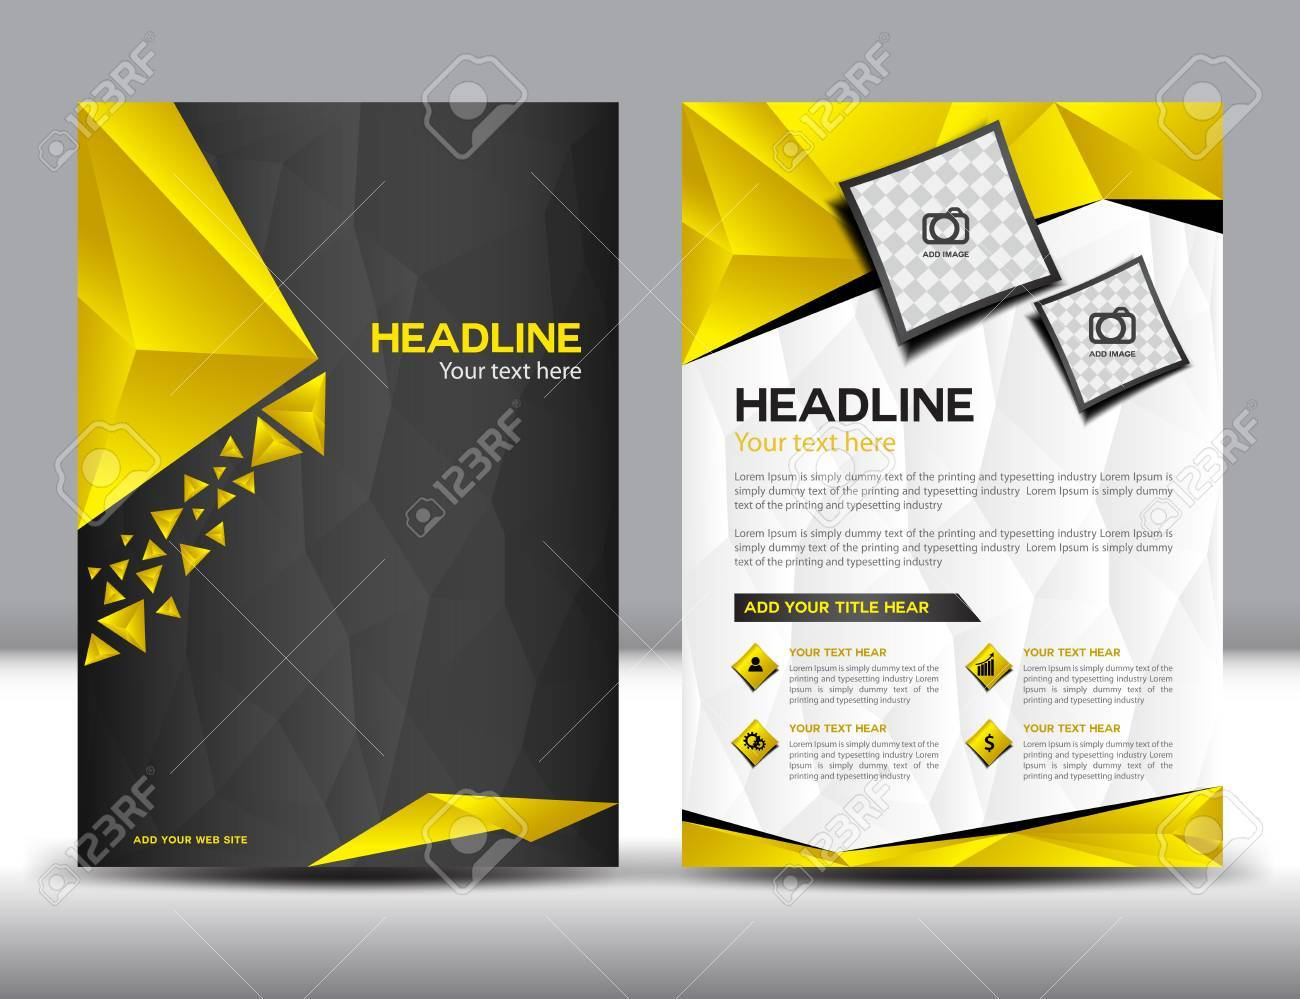 Black And Yellow Business Brochure Design Layout Template Brochure